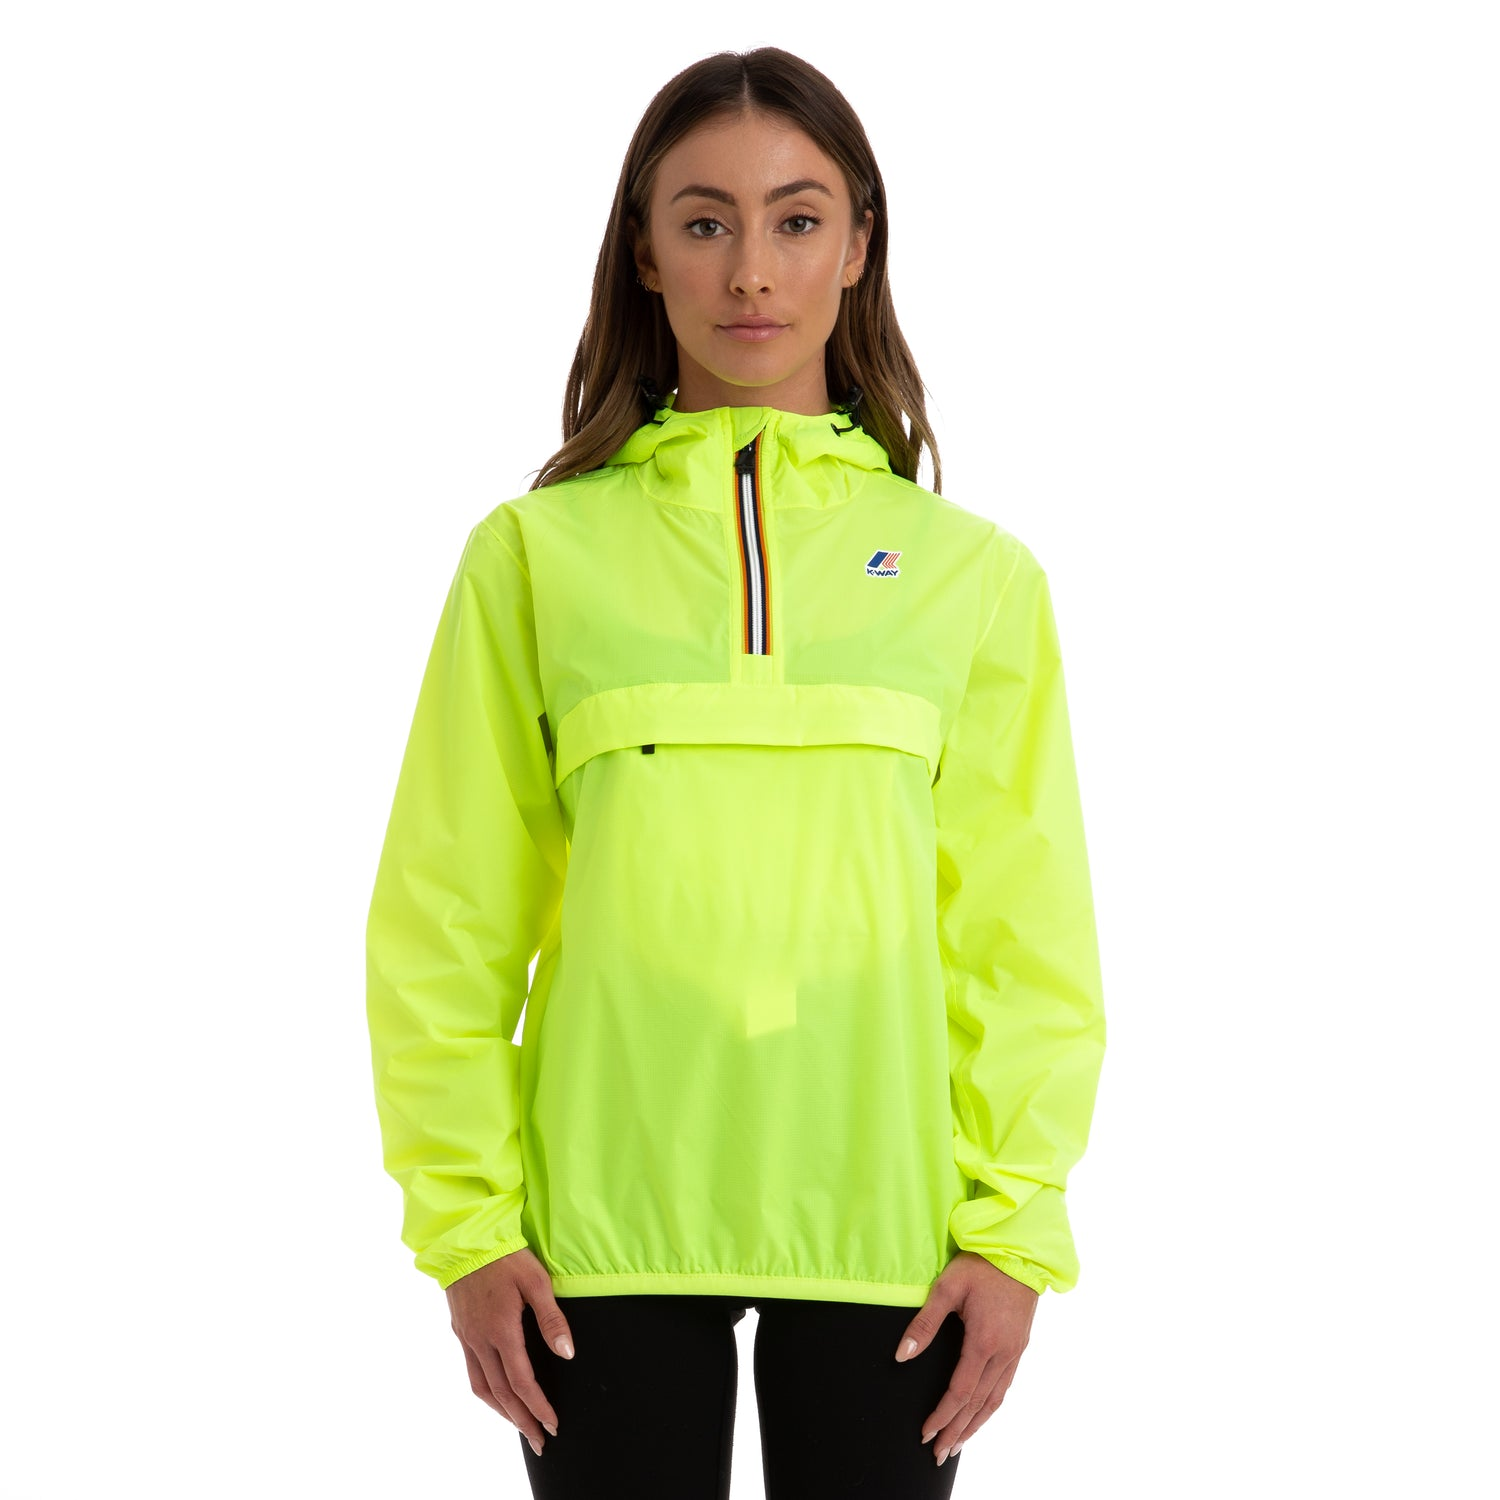 K-Way Women's Le Vrai 3.0 Leon Half Zip Jacket Jacket Yellow Fluo